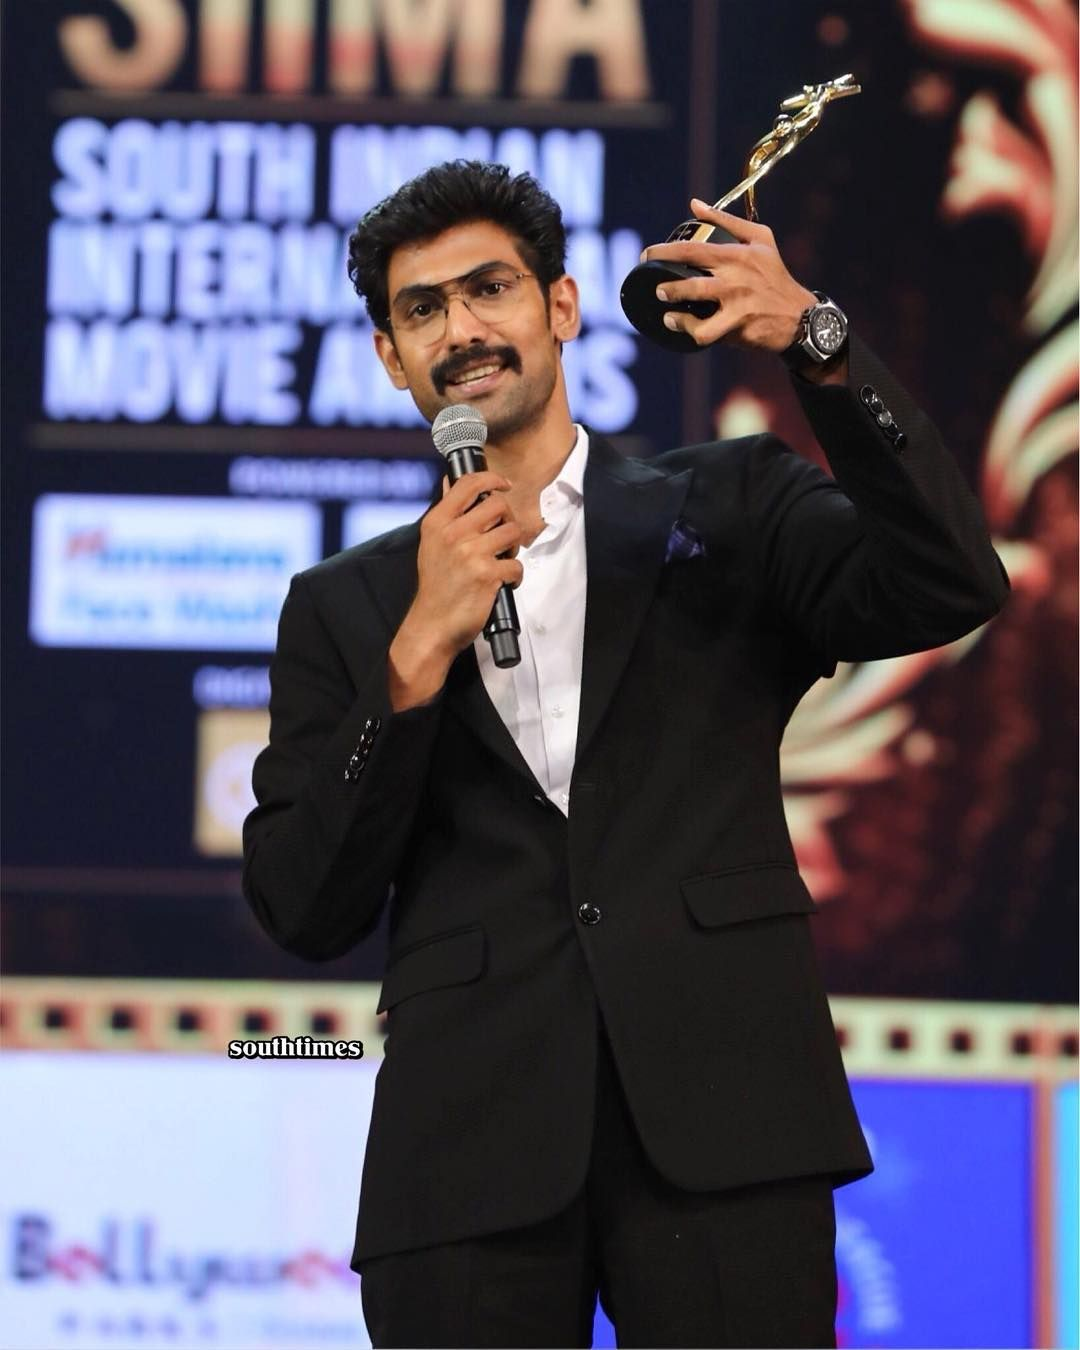 A Few More Photos From SIIMA Awards Day 2 Held For Telugu